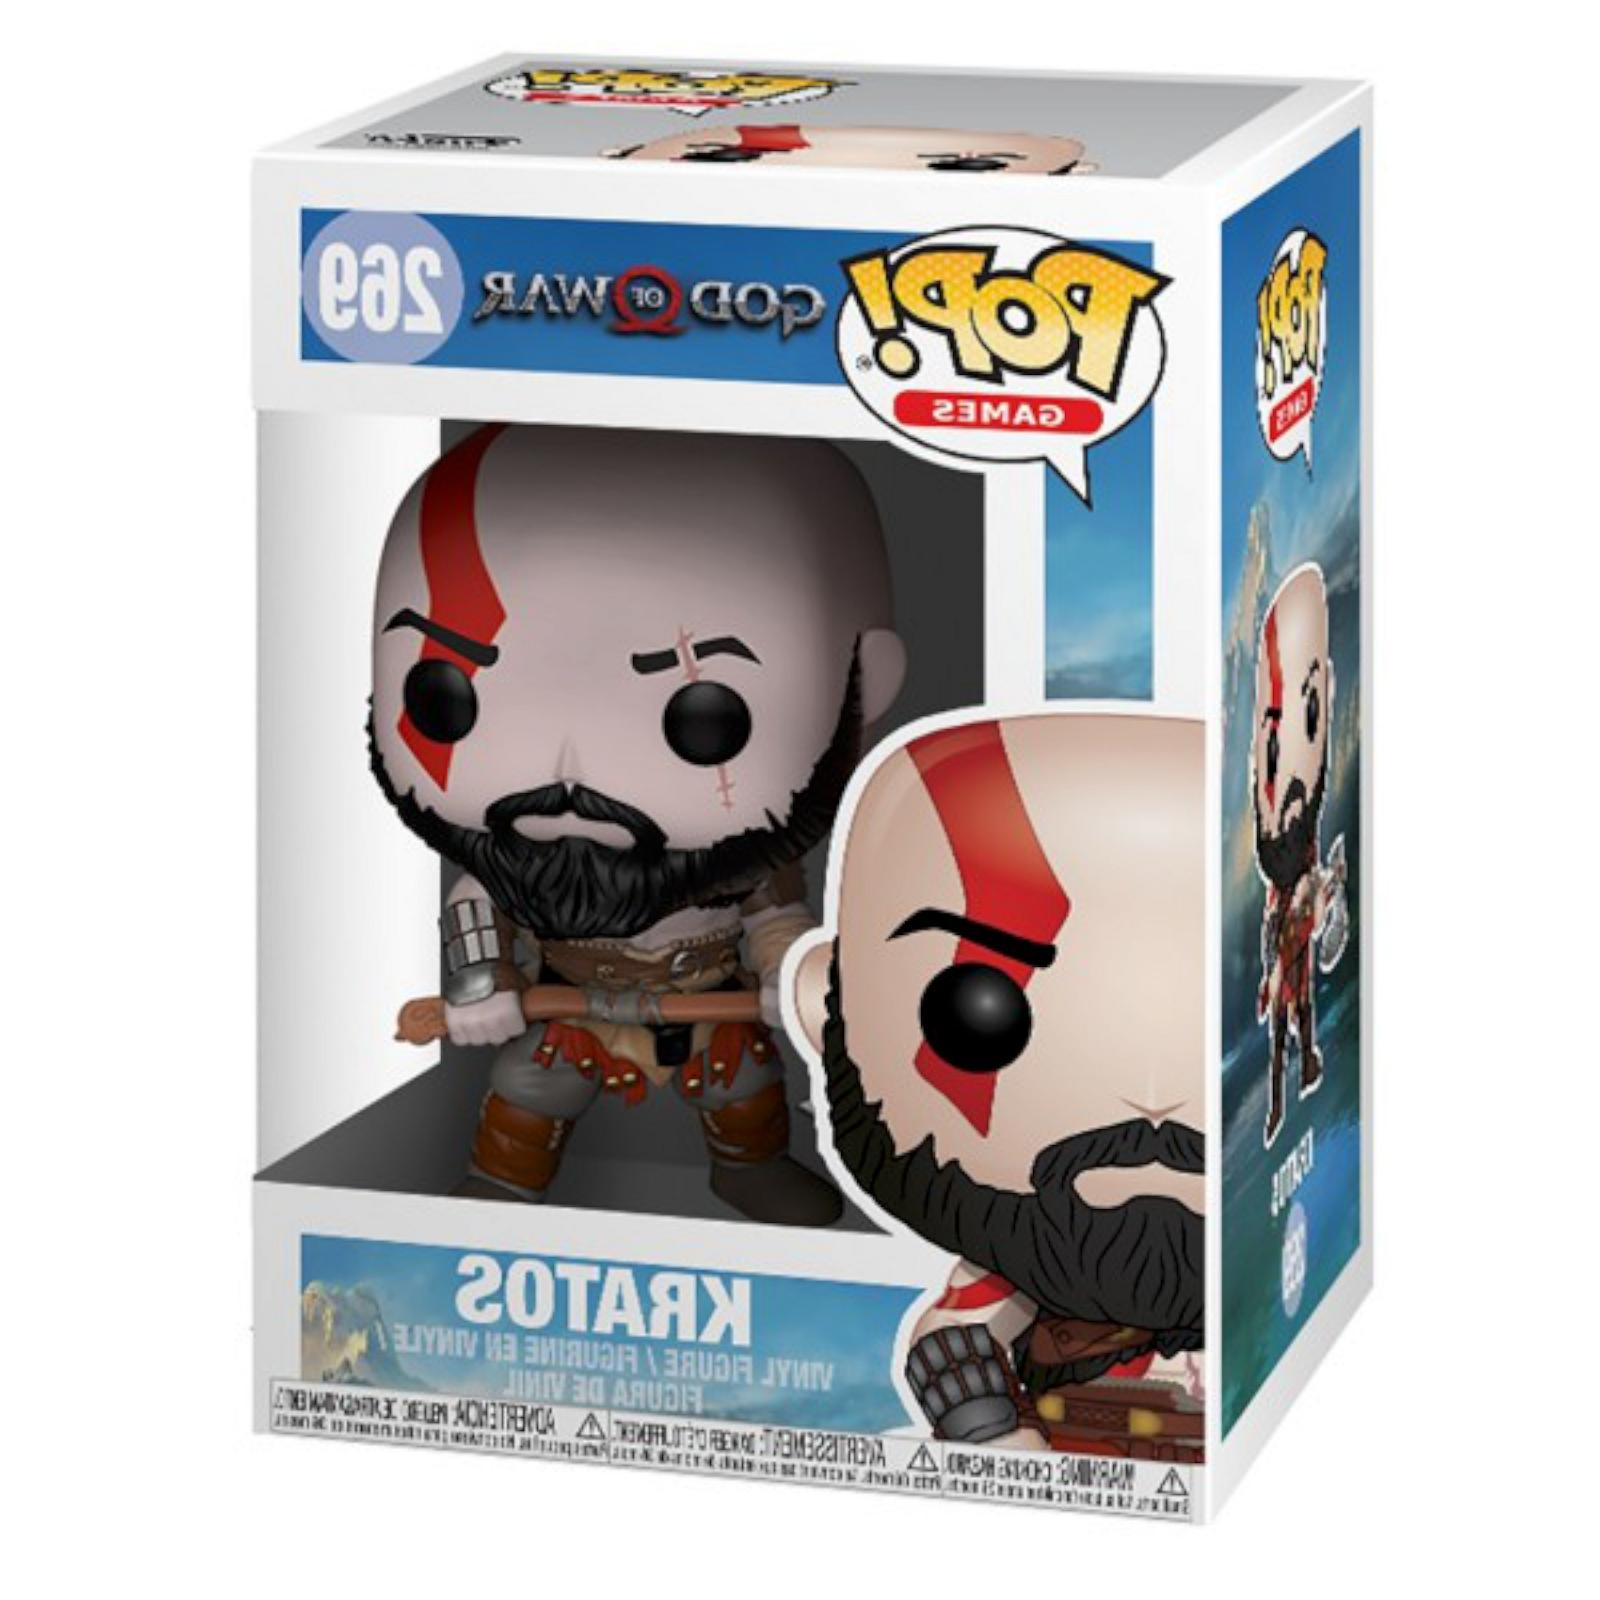 God of War with Axe Figure